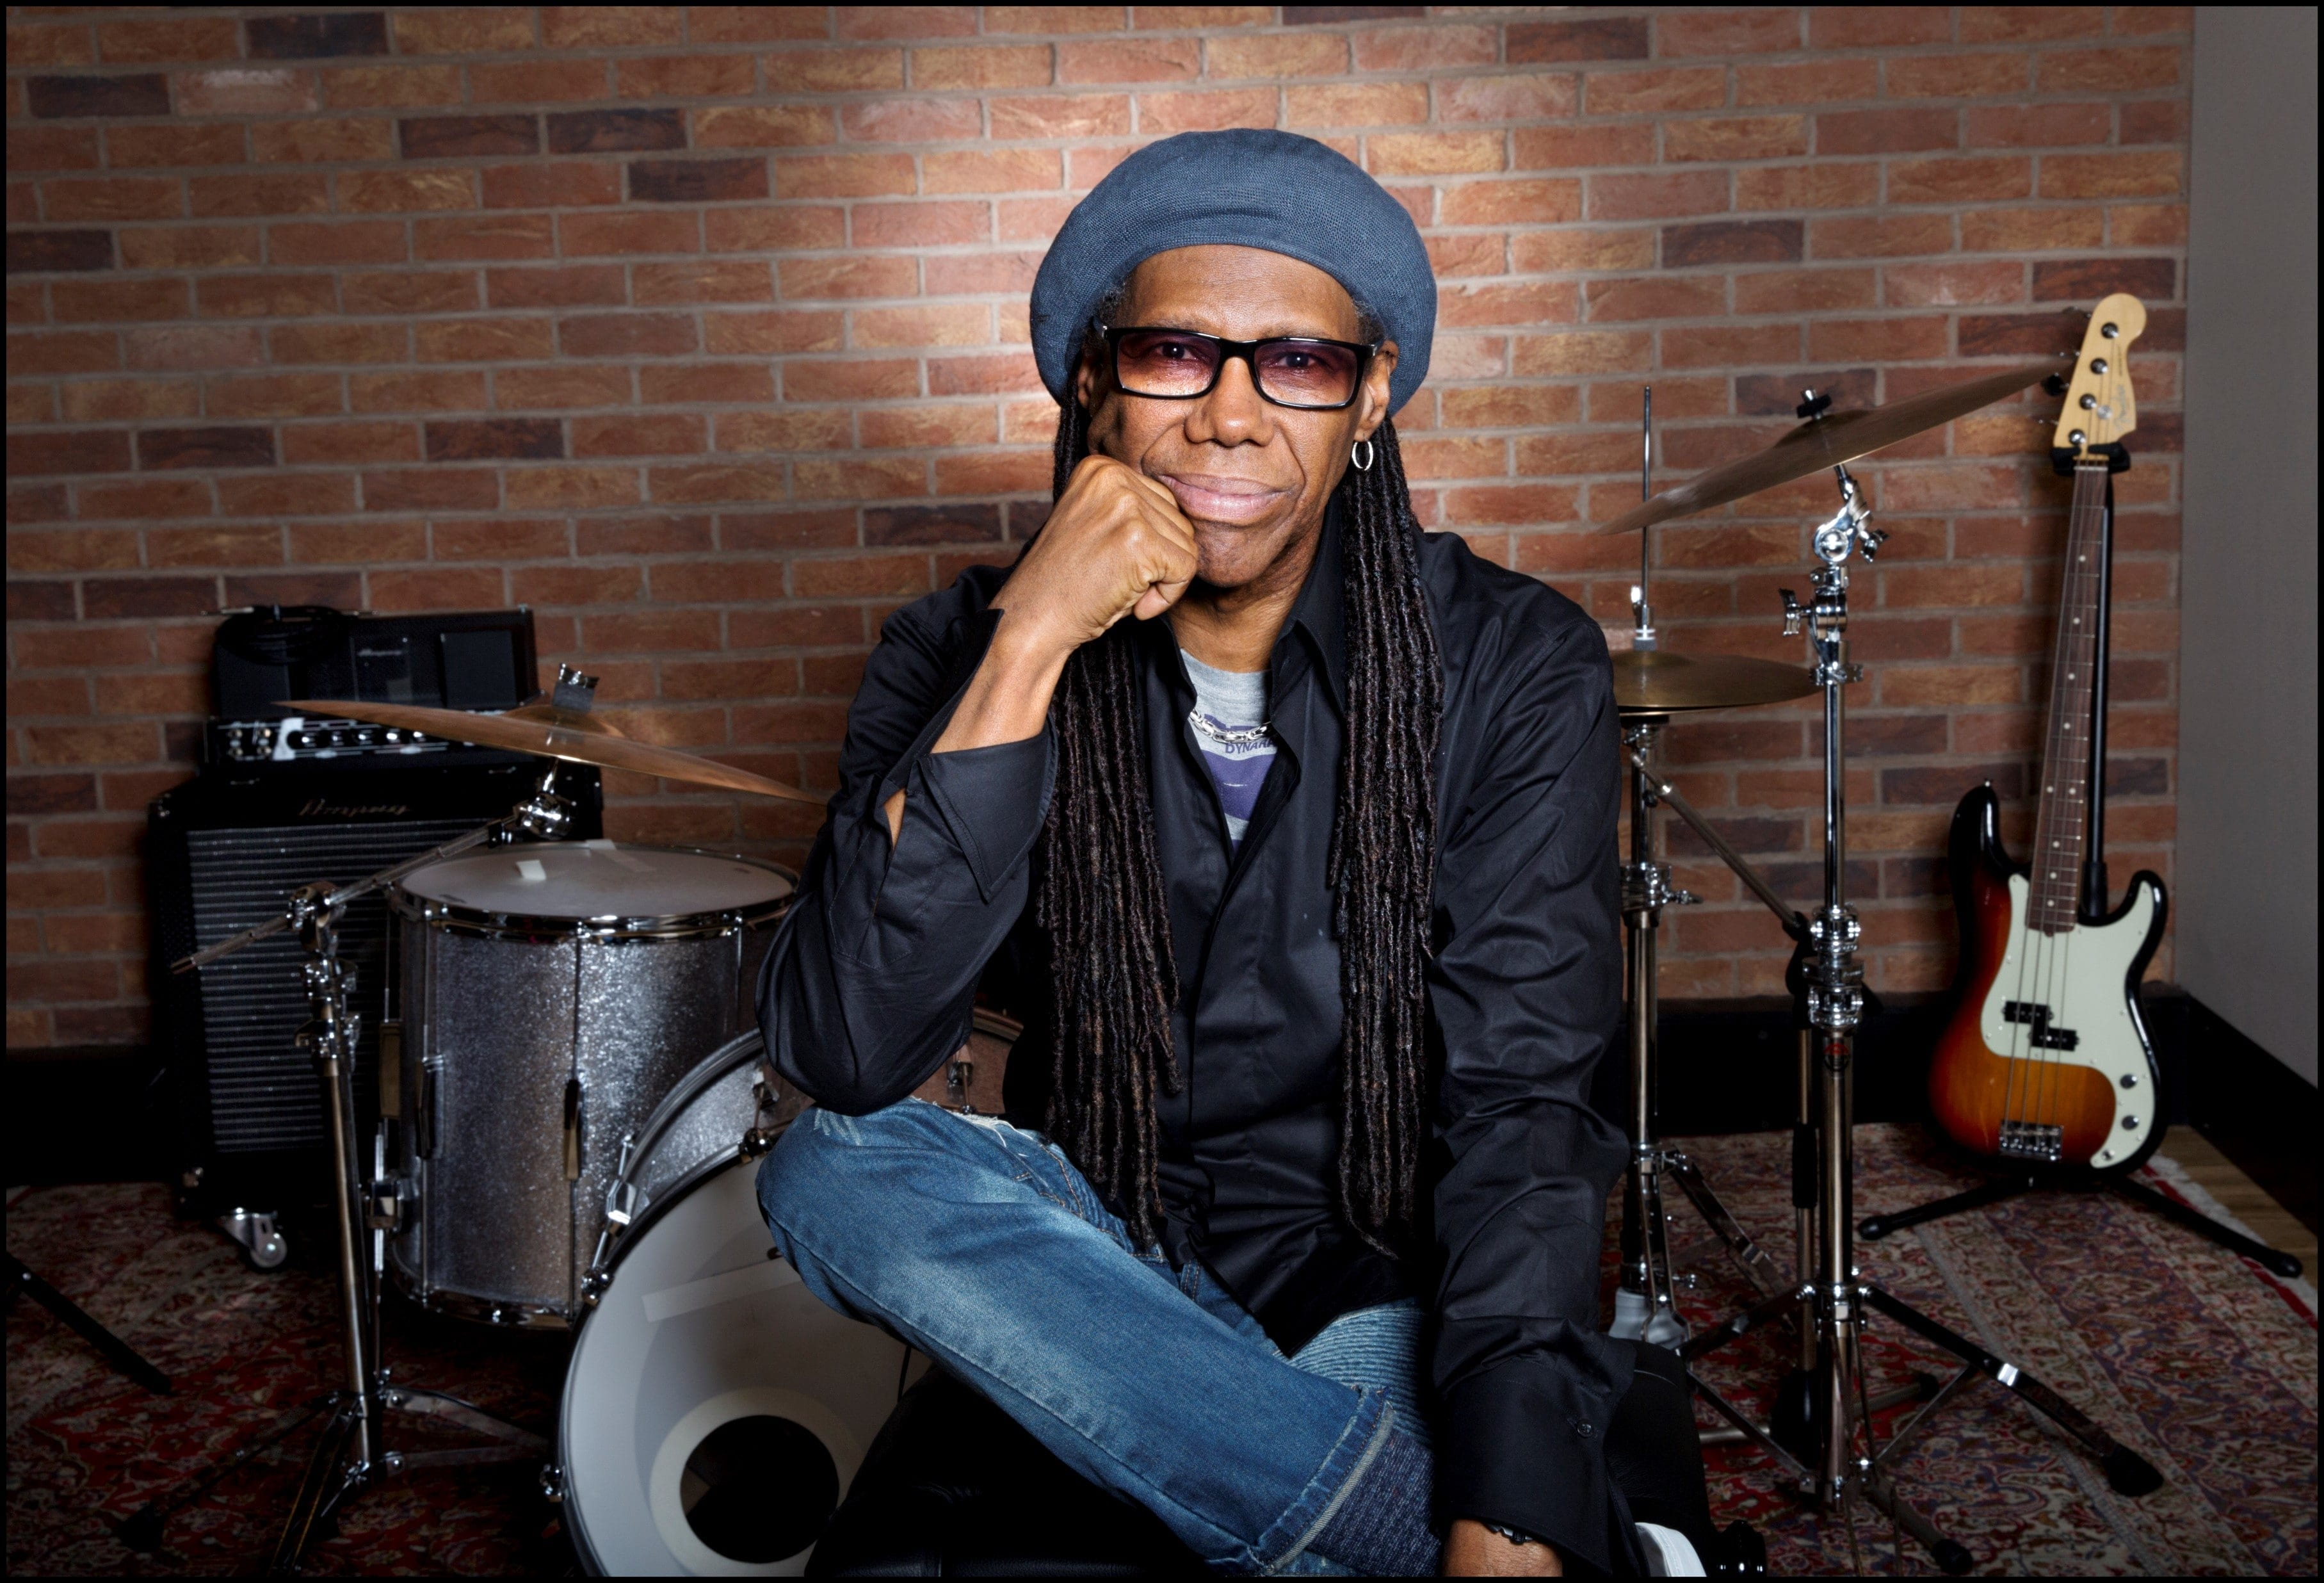 Nile_Rodgers_Abbey_Road_photo_Jill_furmanovsky.jpg